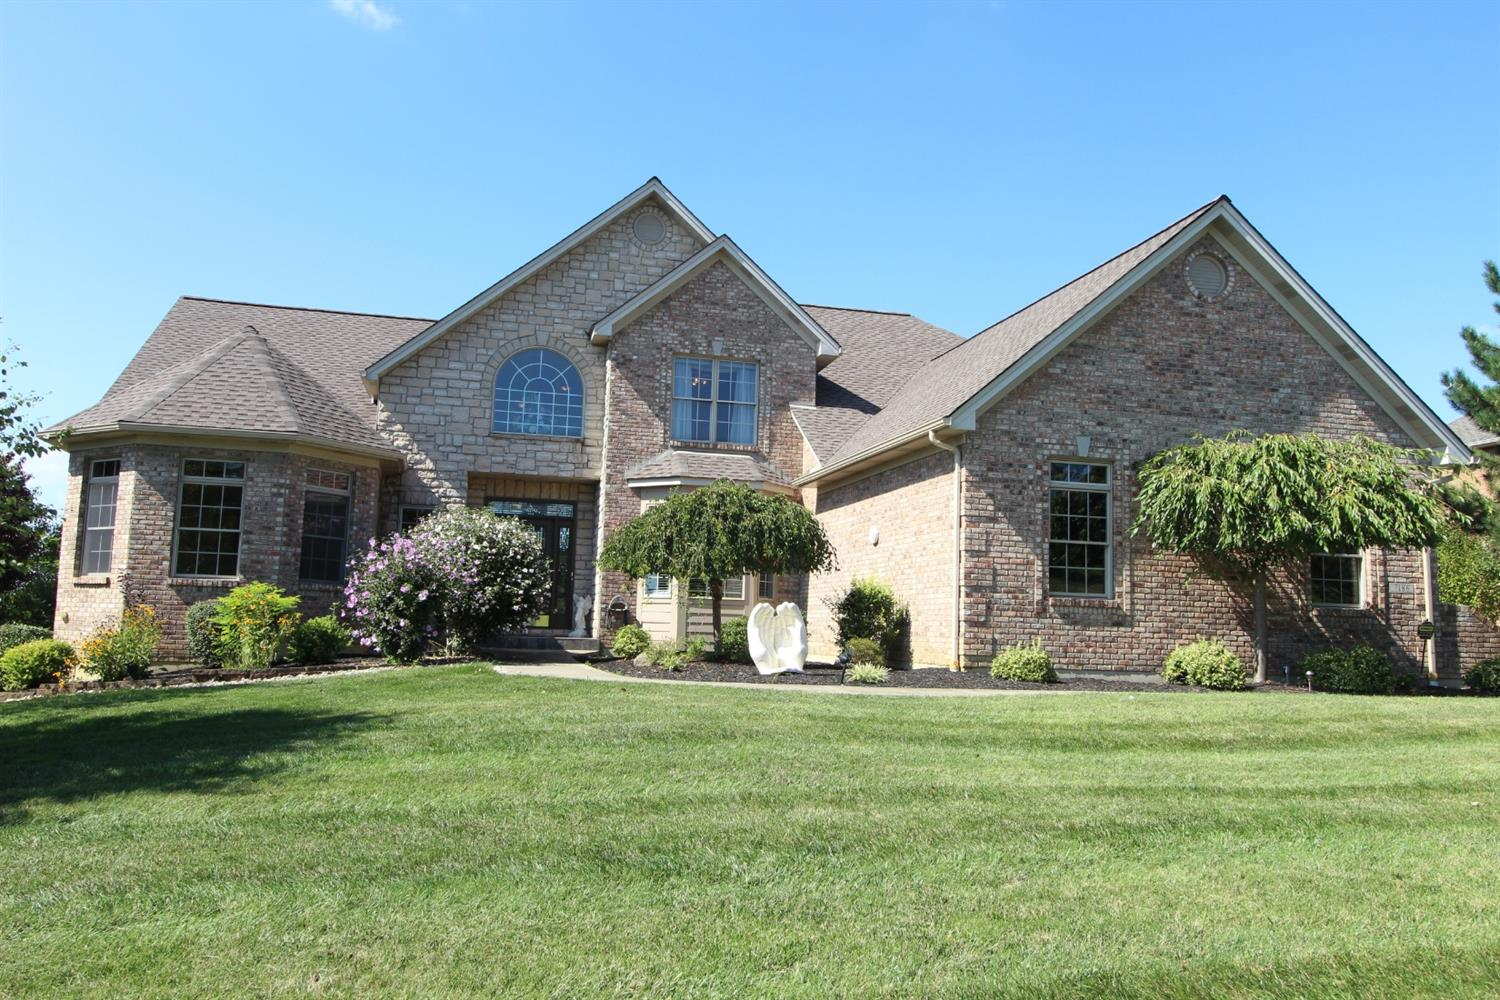 7186 Southampton Ln West Chester - West, OH